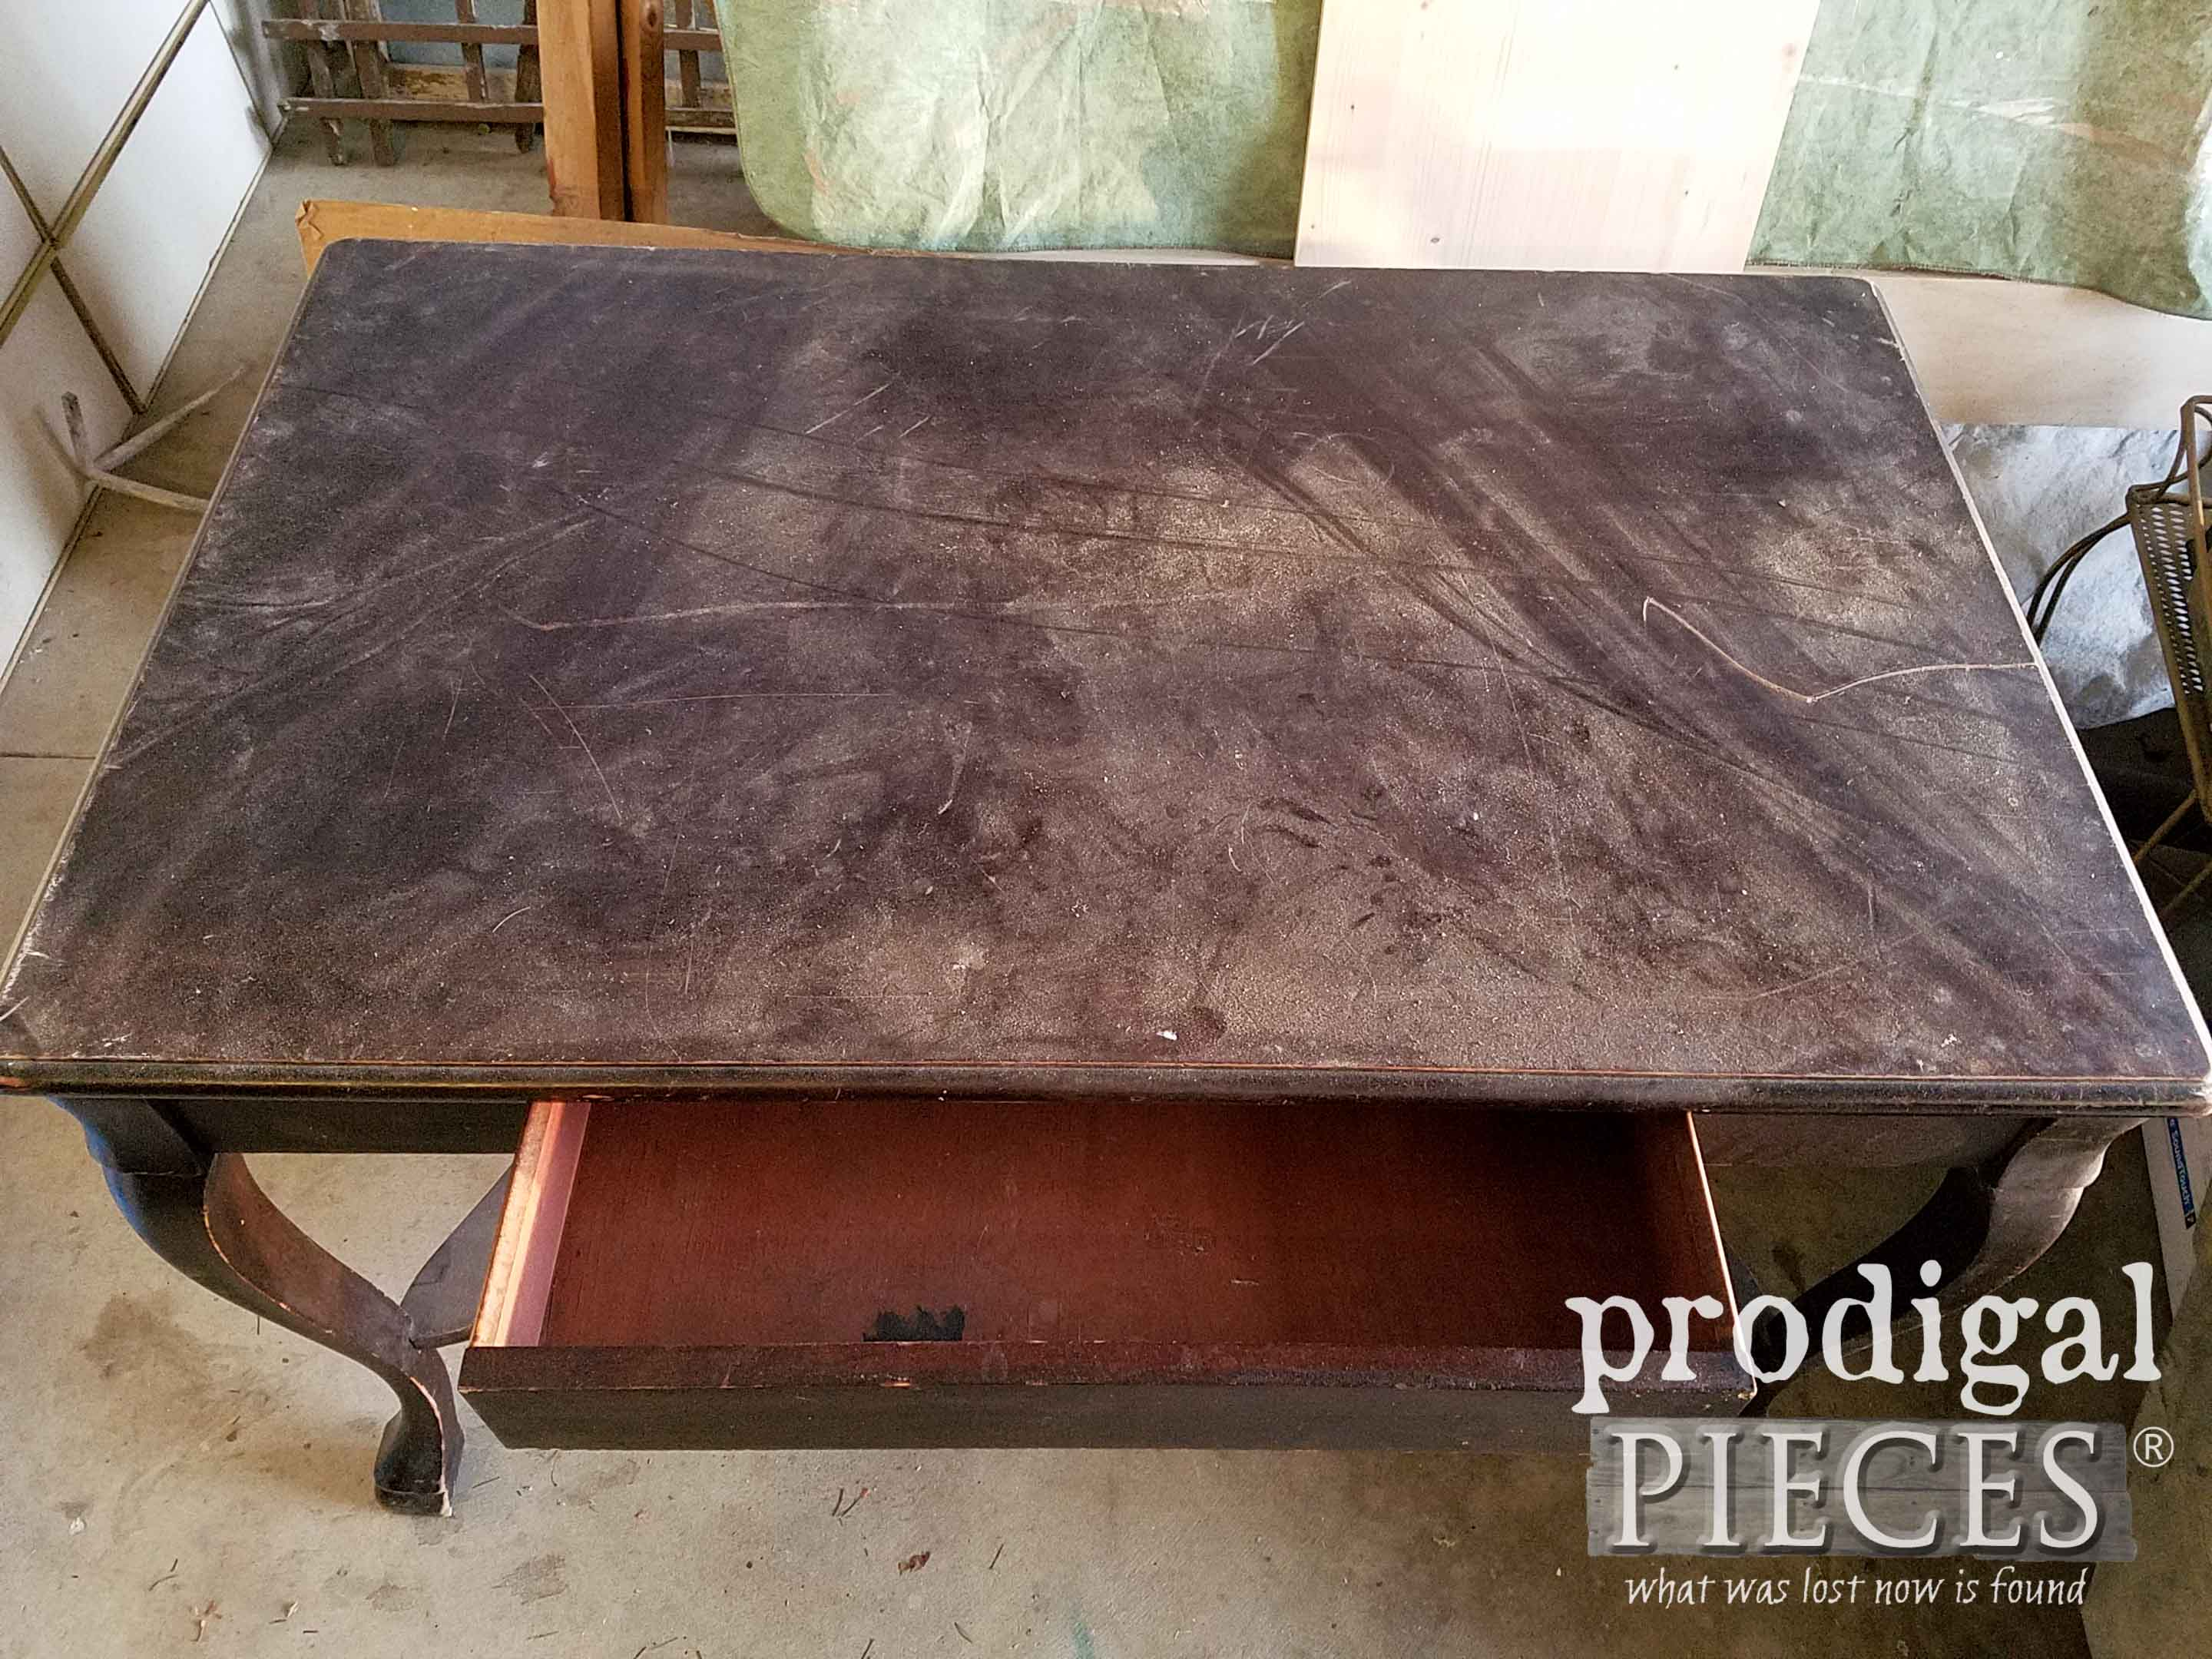 Beau Wear On Antique Library Table Top | Prodigalpieces.com